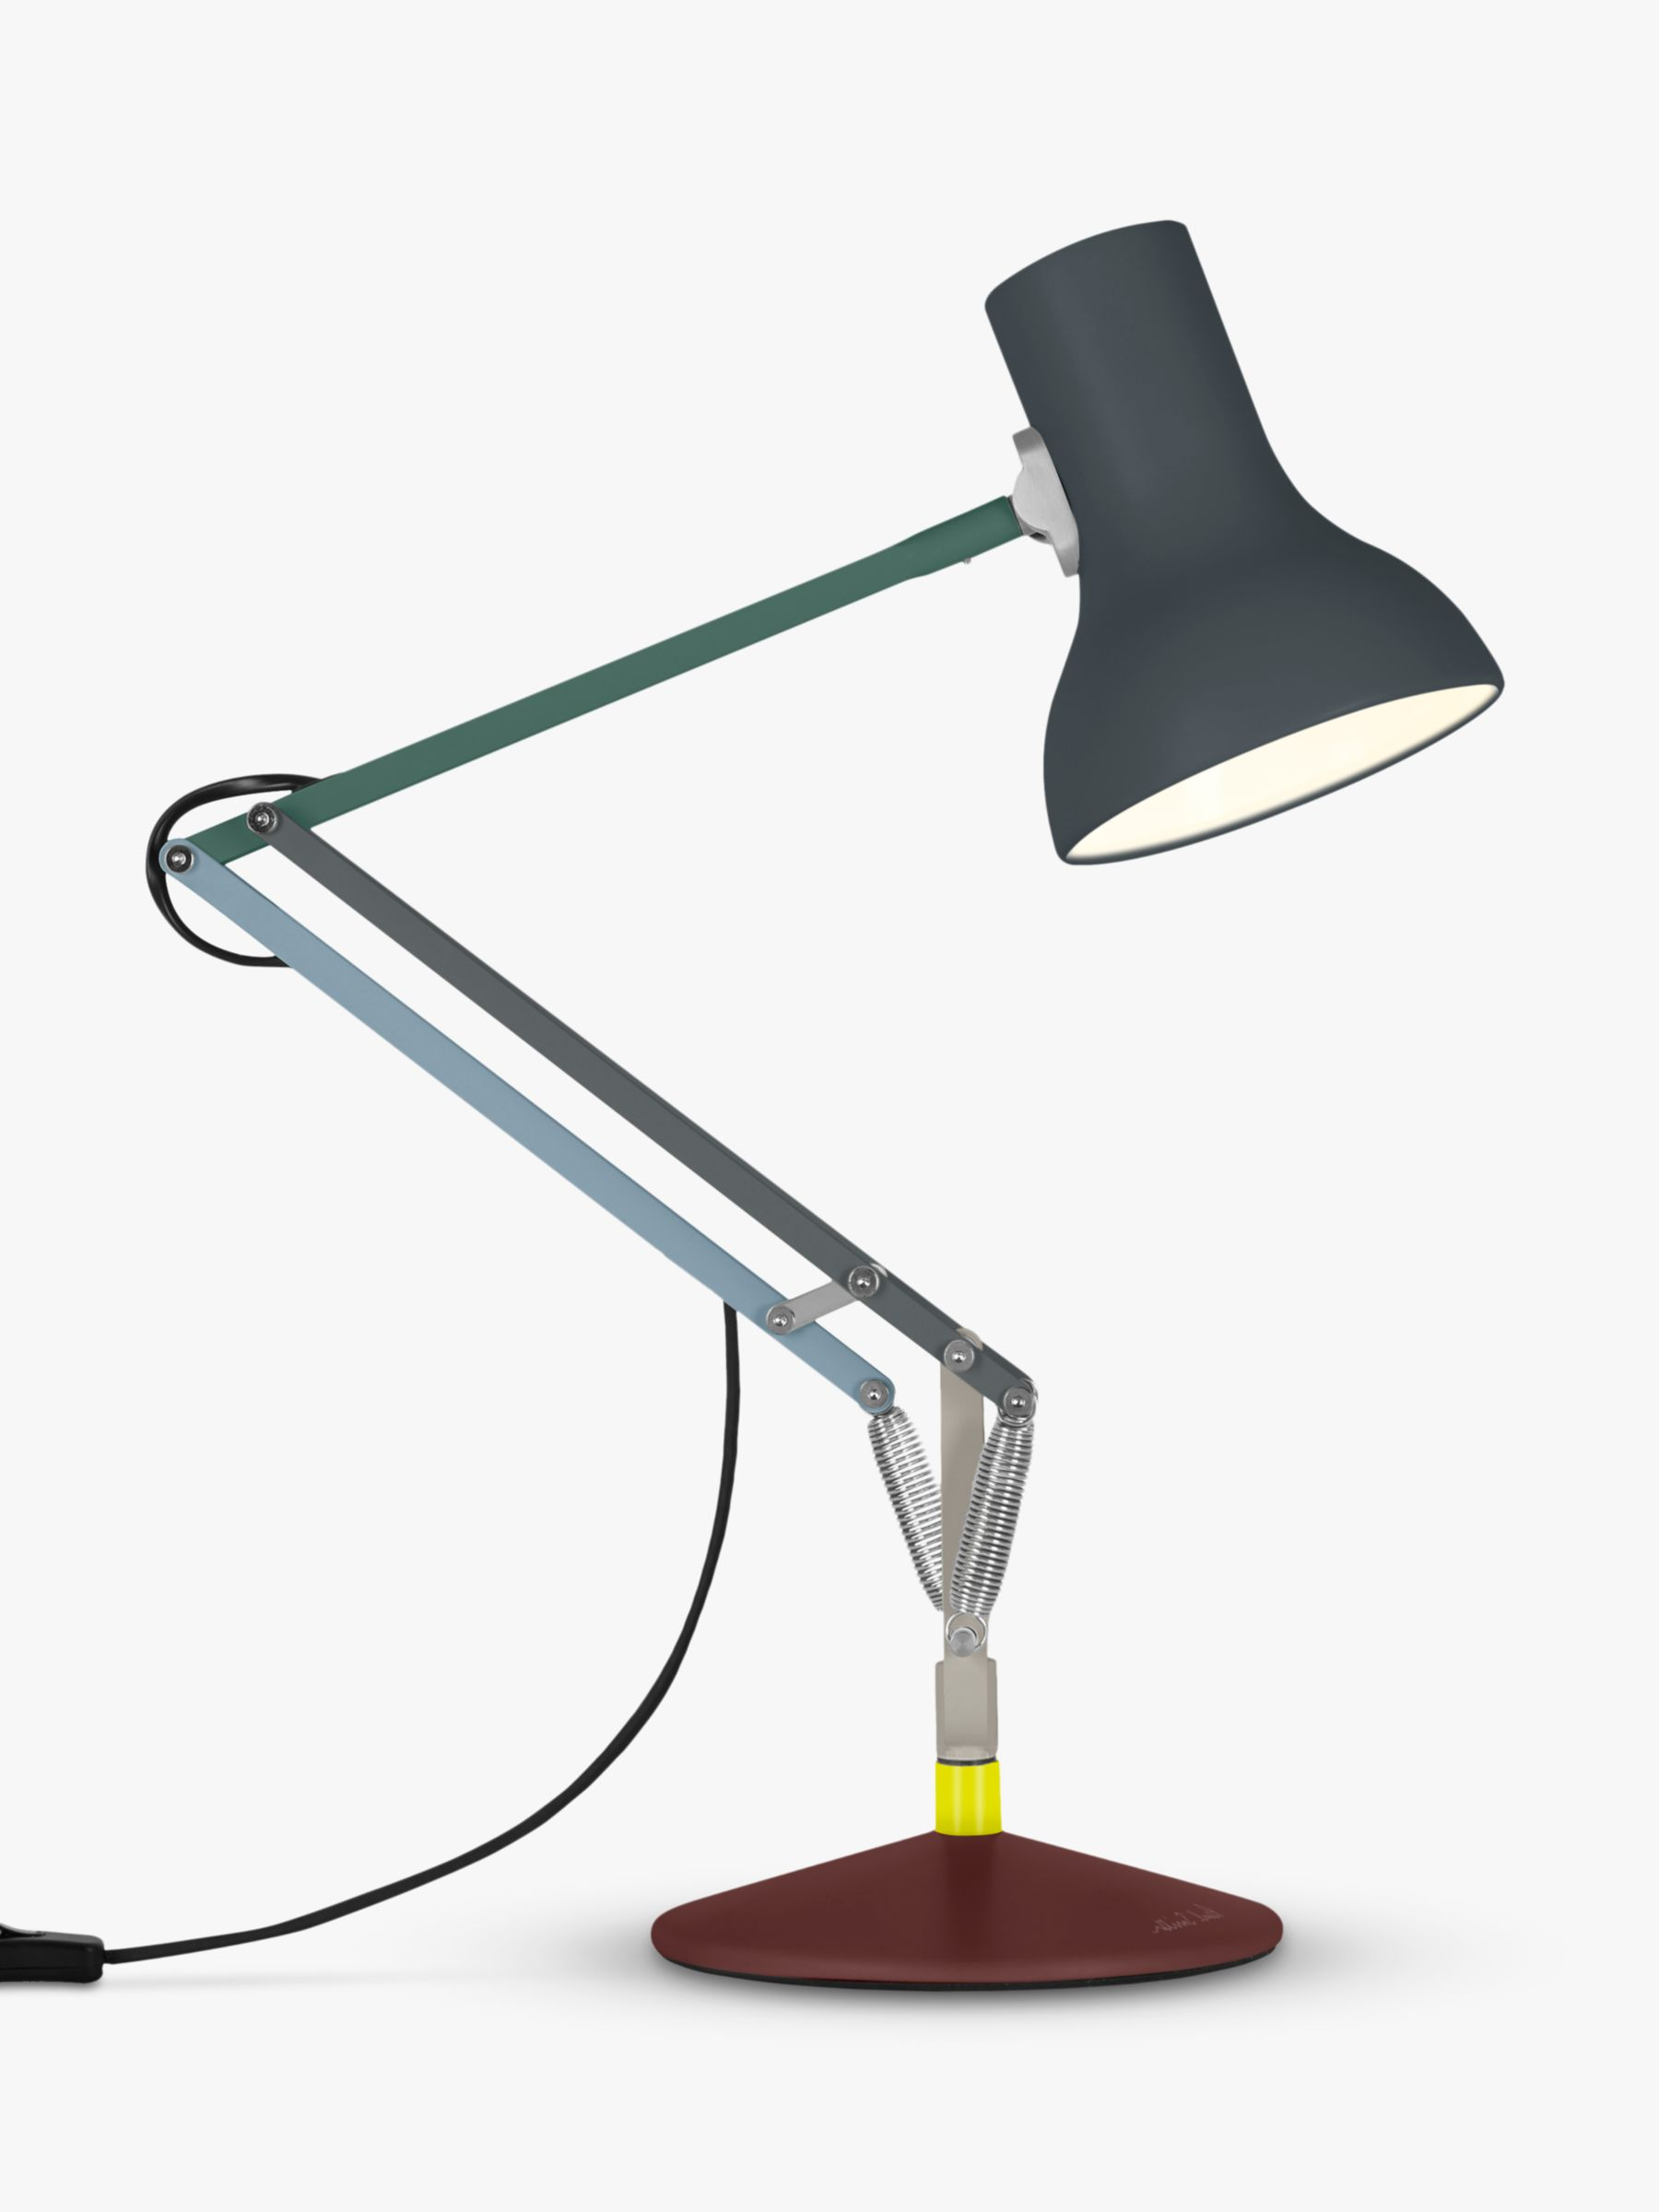 Anglepoise Anglepoise + Paul Smith Defender Type 75 Mini Desk Lamp, Edition 4